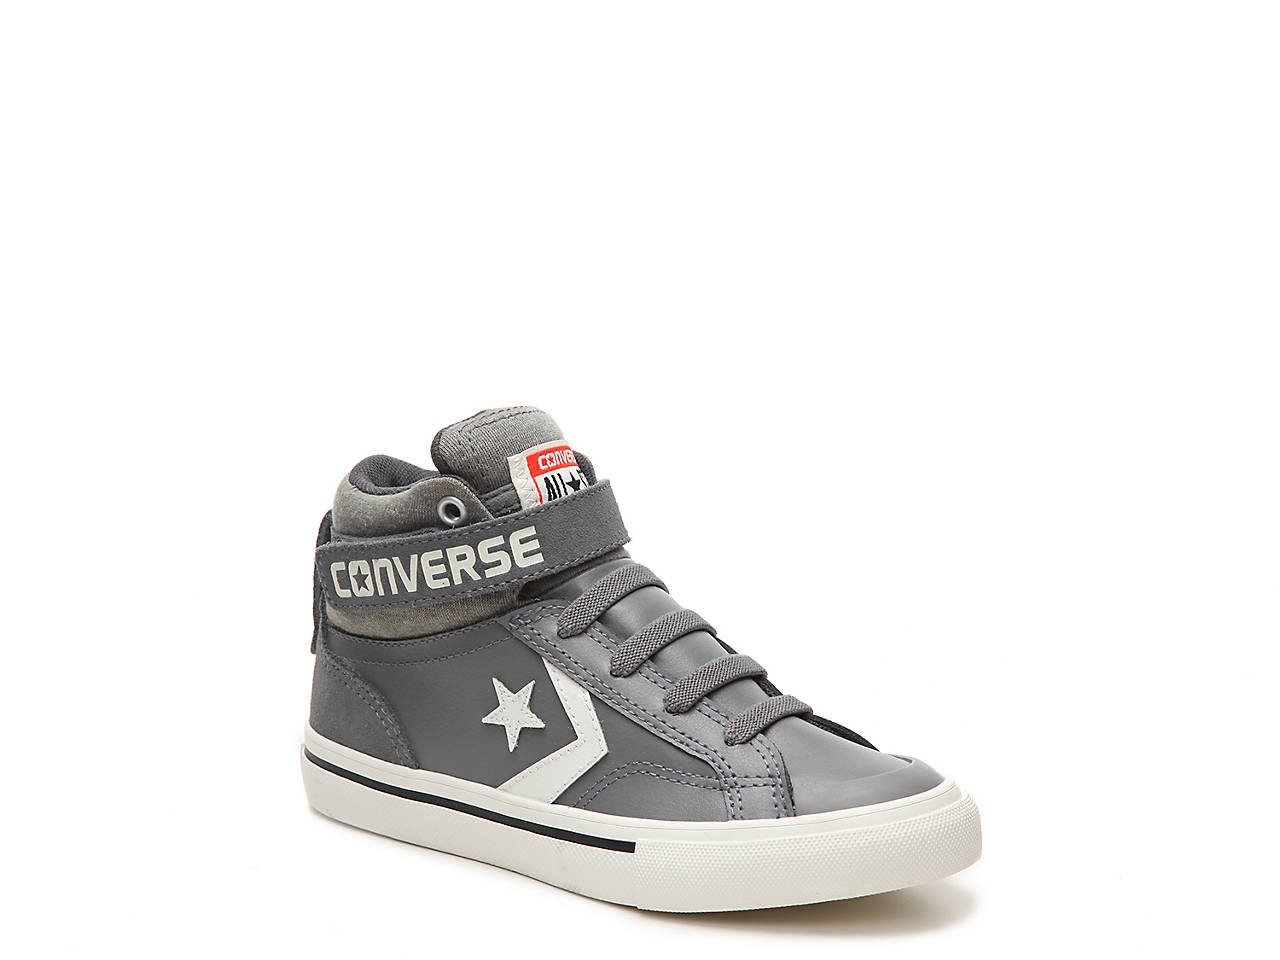 8bb84c6225a4 Converse Chuck Taylor All Star Pro Blaze Toddler   Youth High-Top Sneaker  Kids Shoes